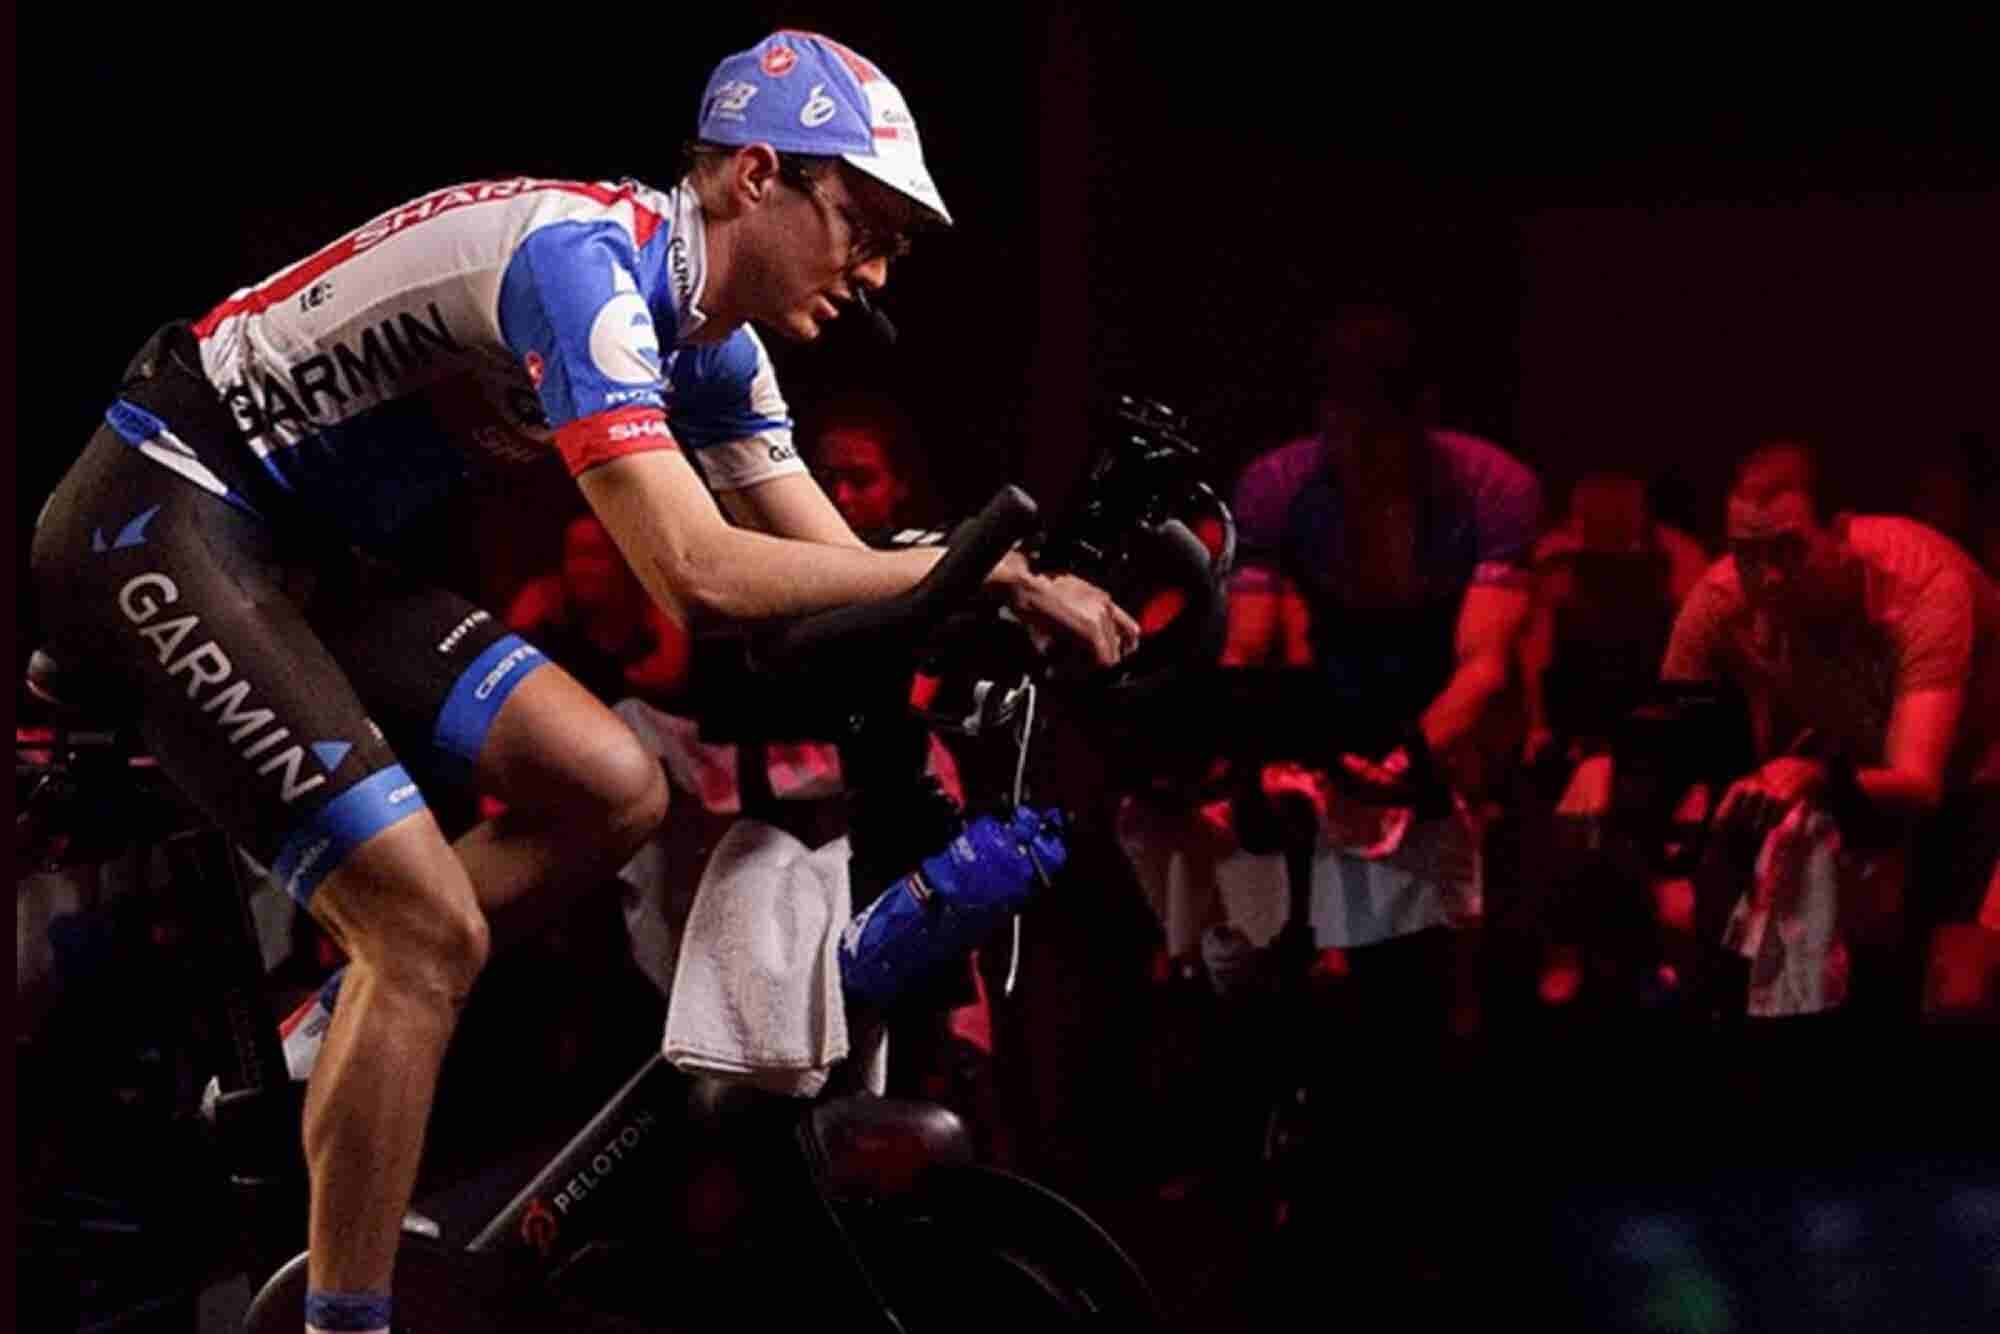 Inside This Cycling Startup's High-Tech Livestreaming Studio